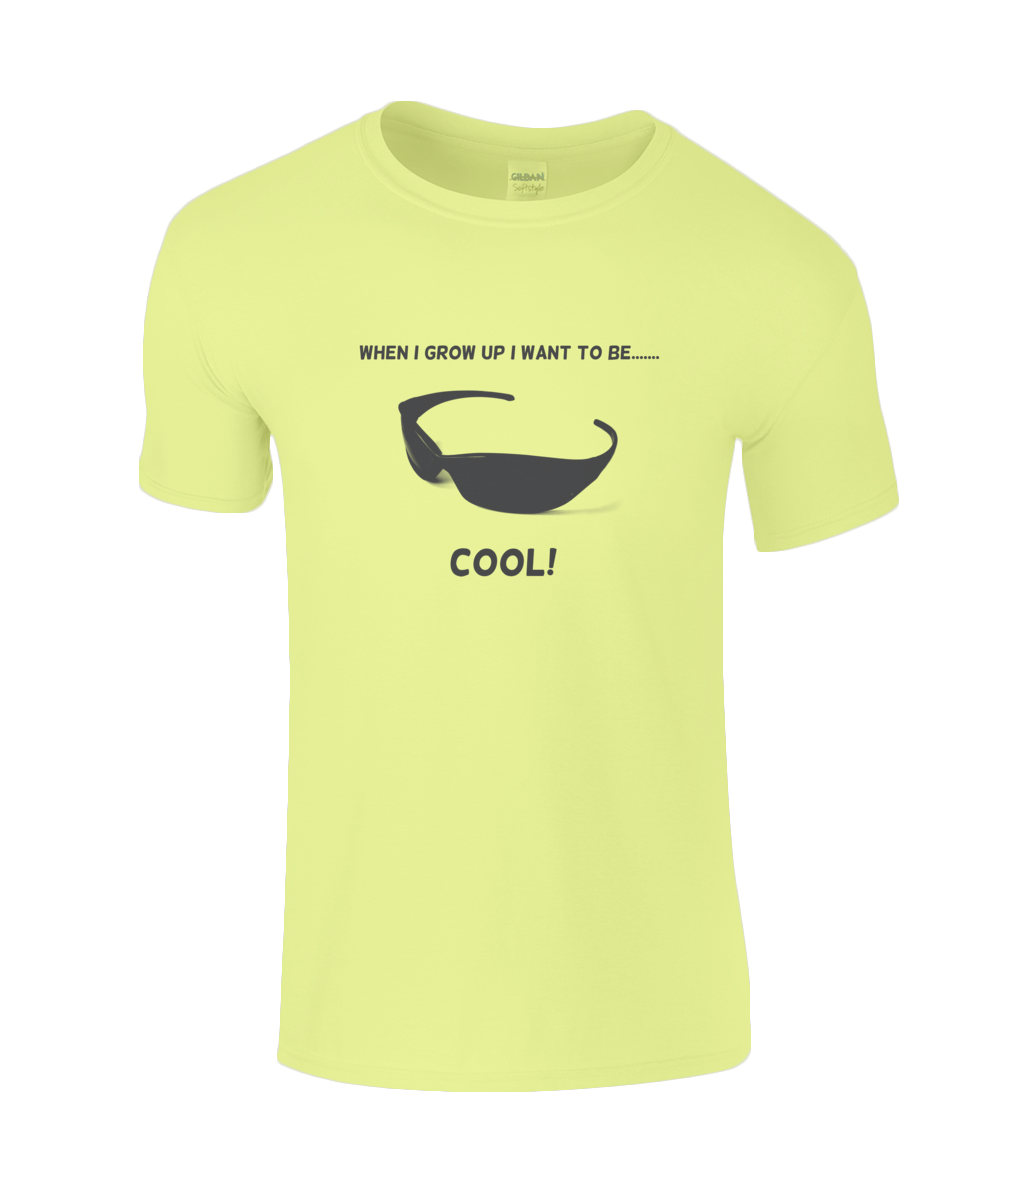 When I Grow Up I Want To Be Cool! - youth's t-shirt